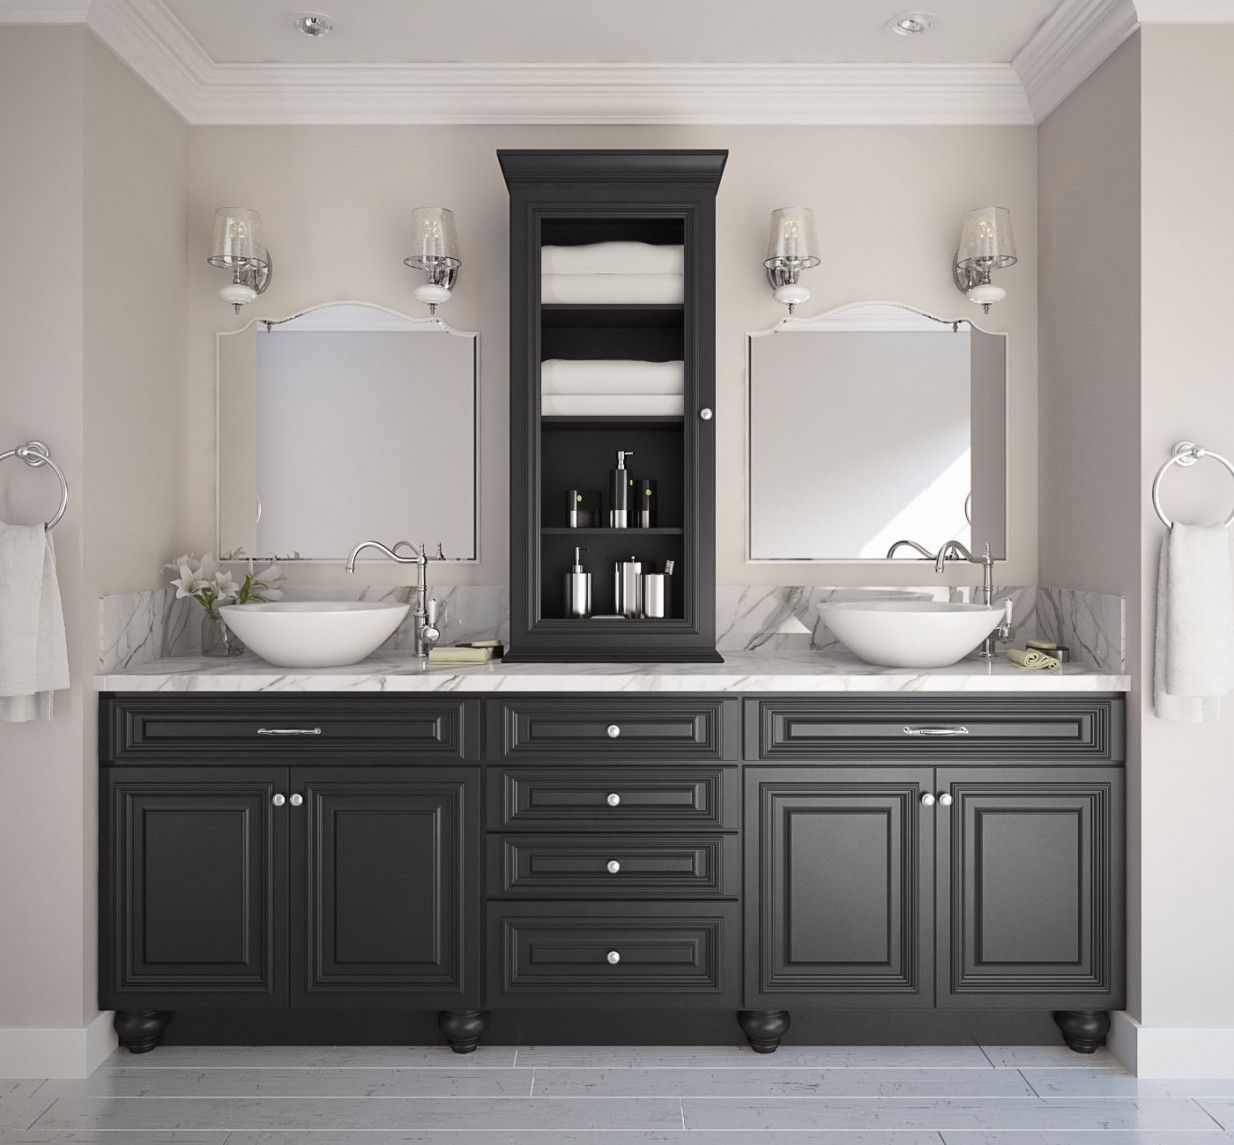 Charmant 2019 Bathroom Cabinets Tampa   Best Interior Wall Paint Check More At  Http://